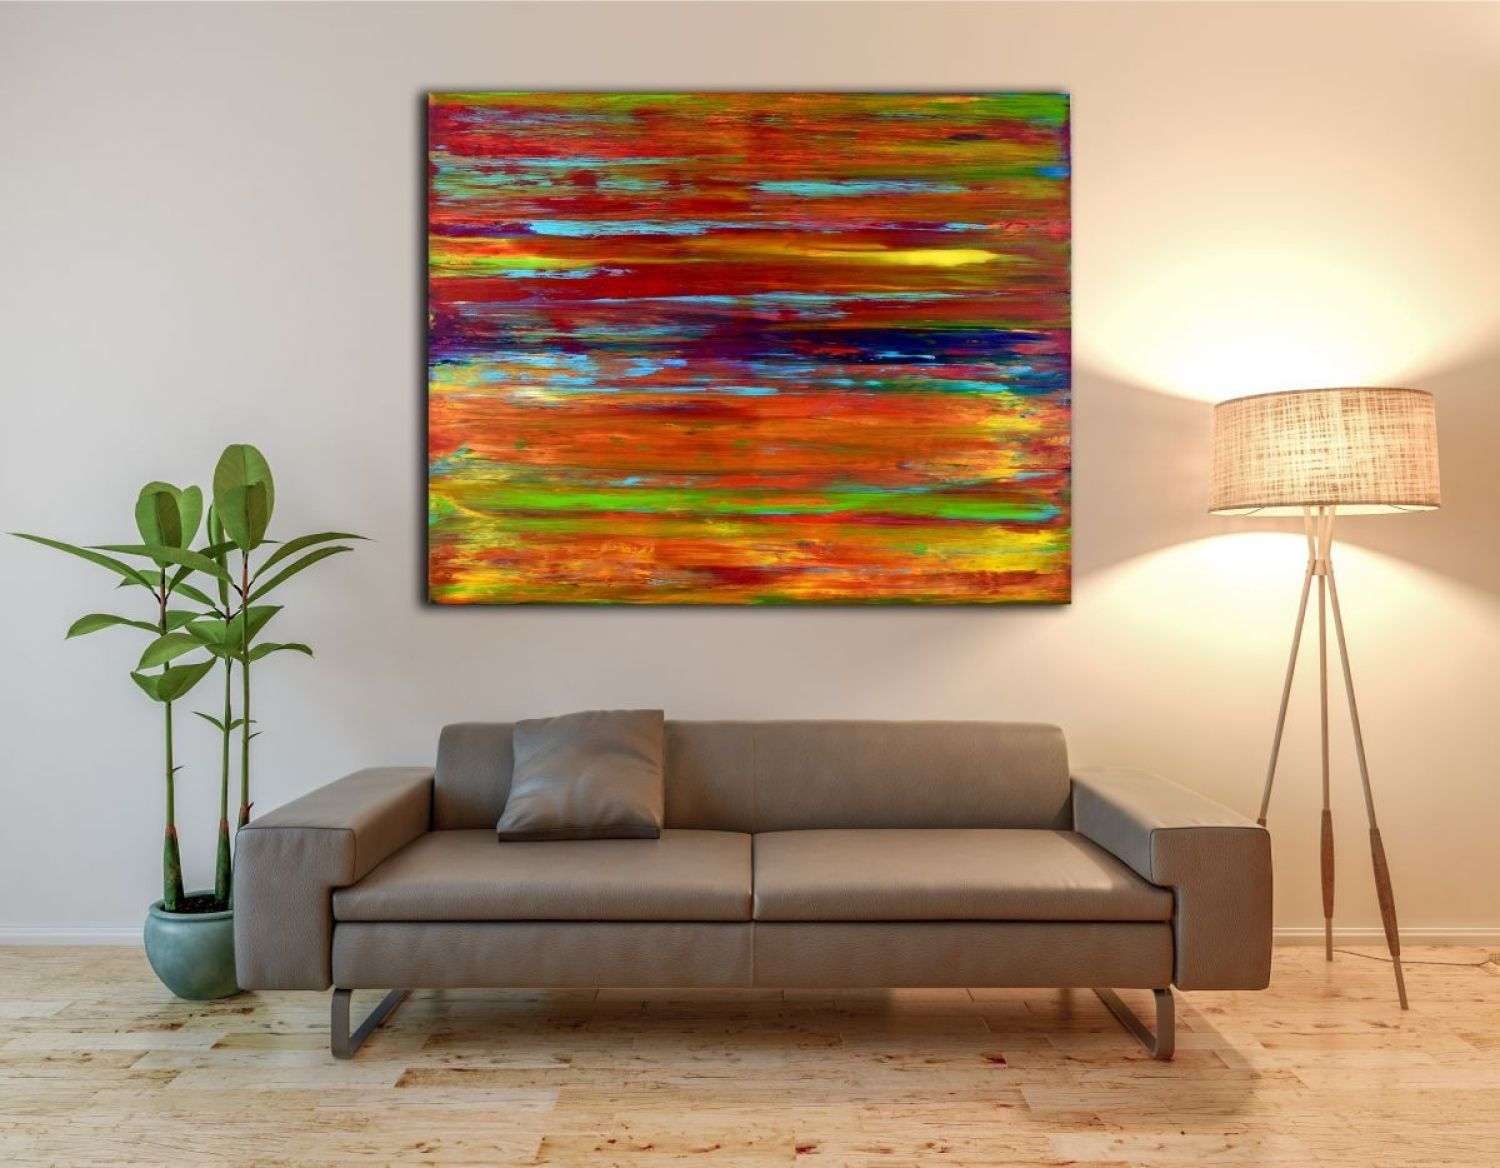 Very vibrant almost electric colorfield painting with great light and fine details. Textured with many layers of plaster to prime the canvas then applied acrylic paint with spatulas and palate knif...